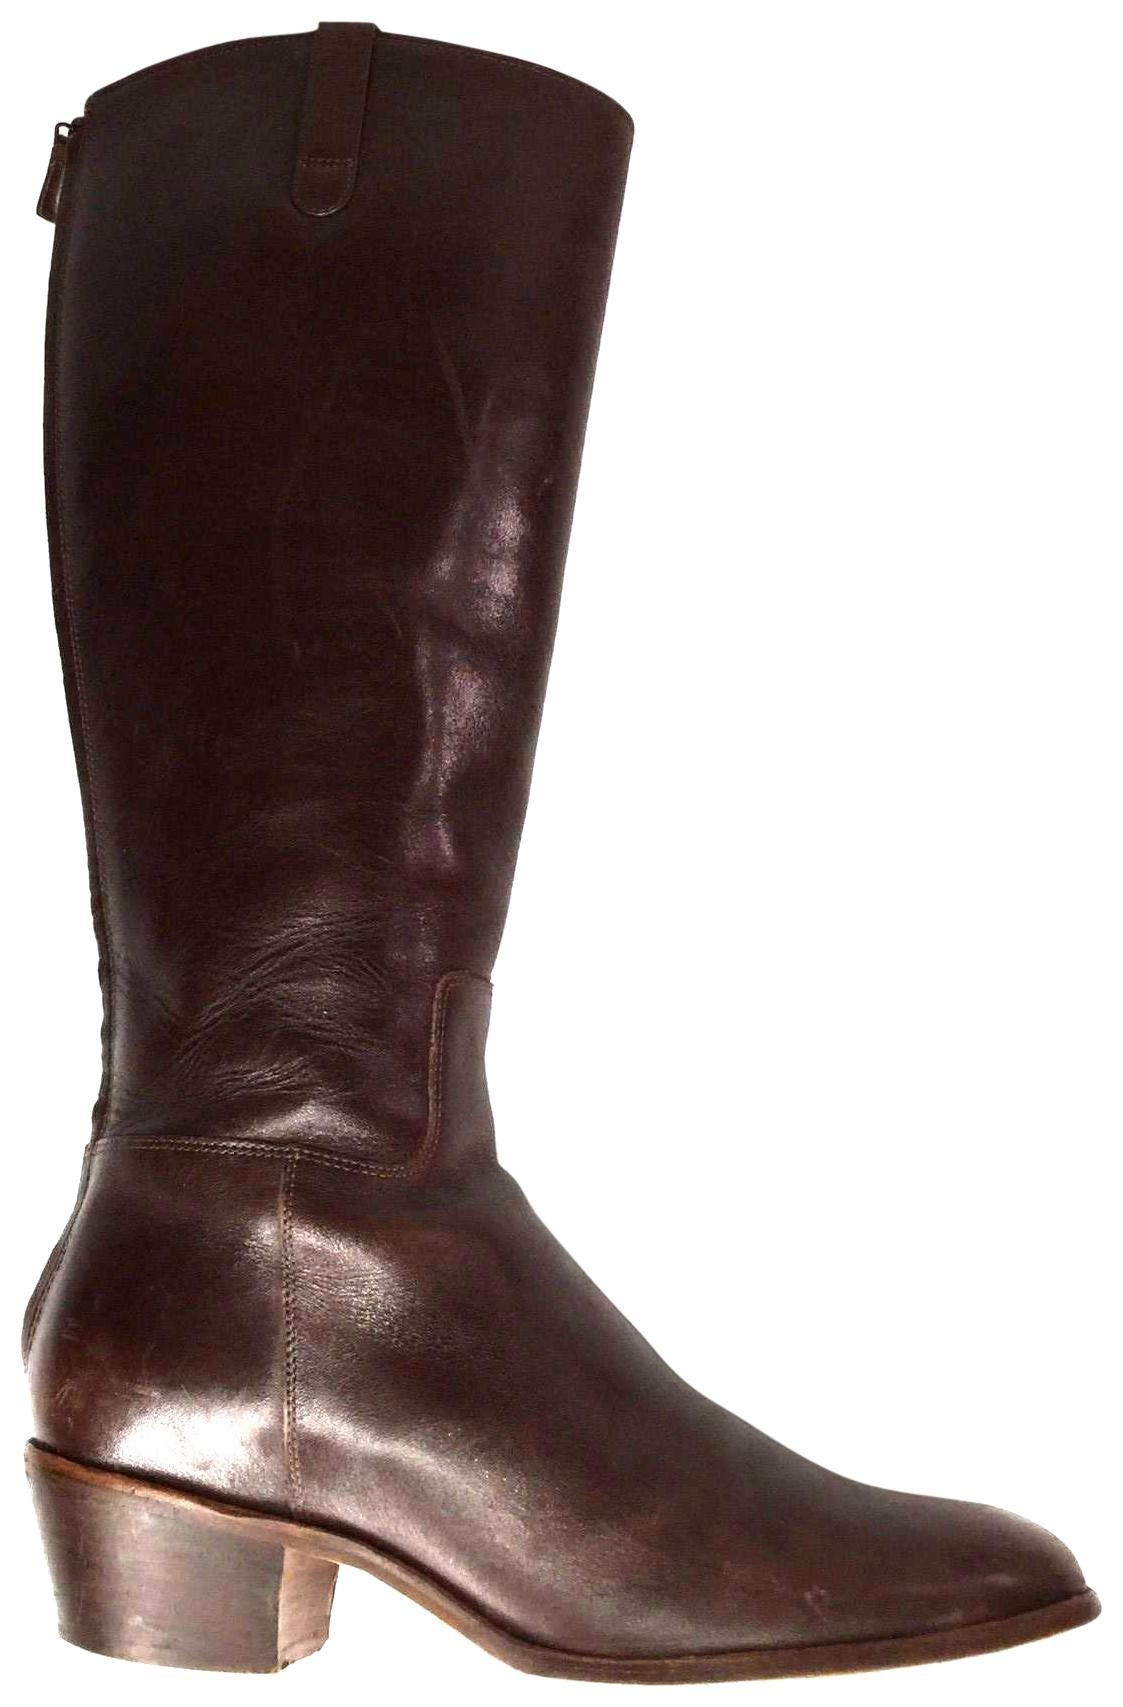 Cole Haan Brown Women's Zip Up Knee High Casual Boots/Booties Size US 8 Regular (M, B)